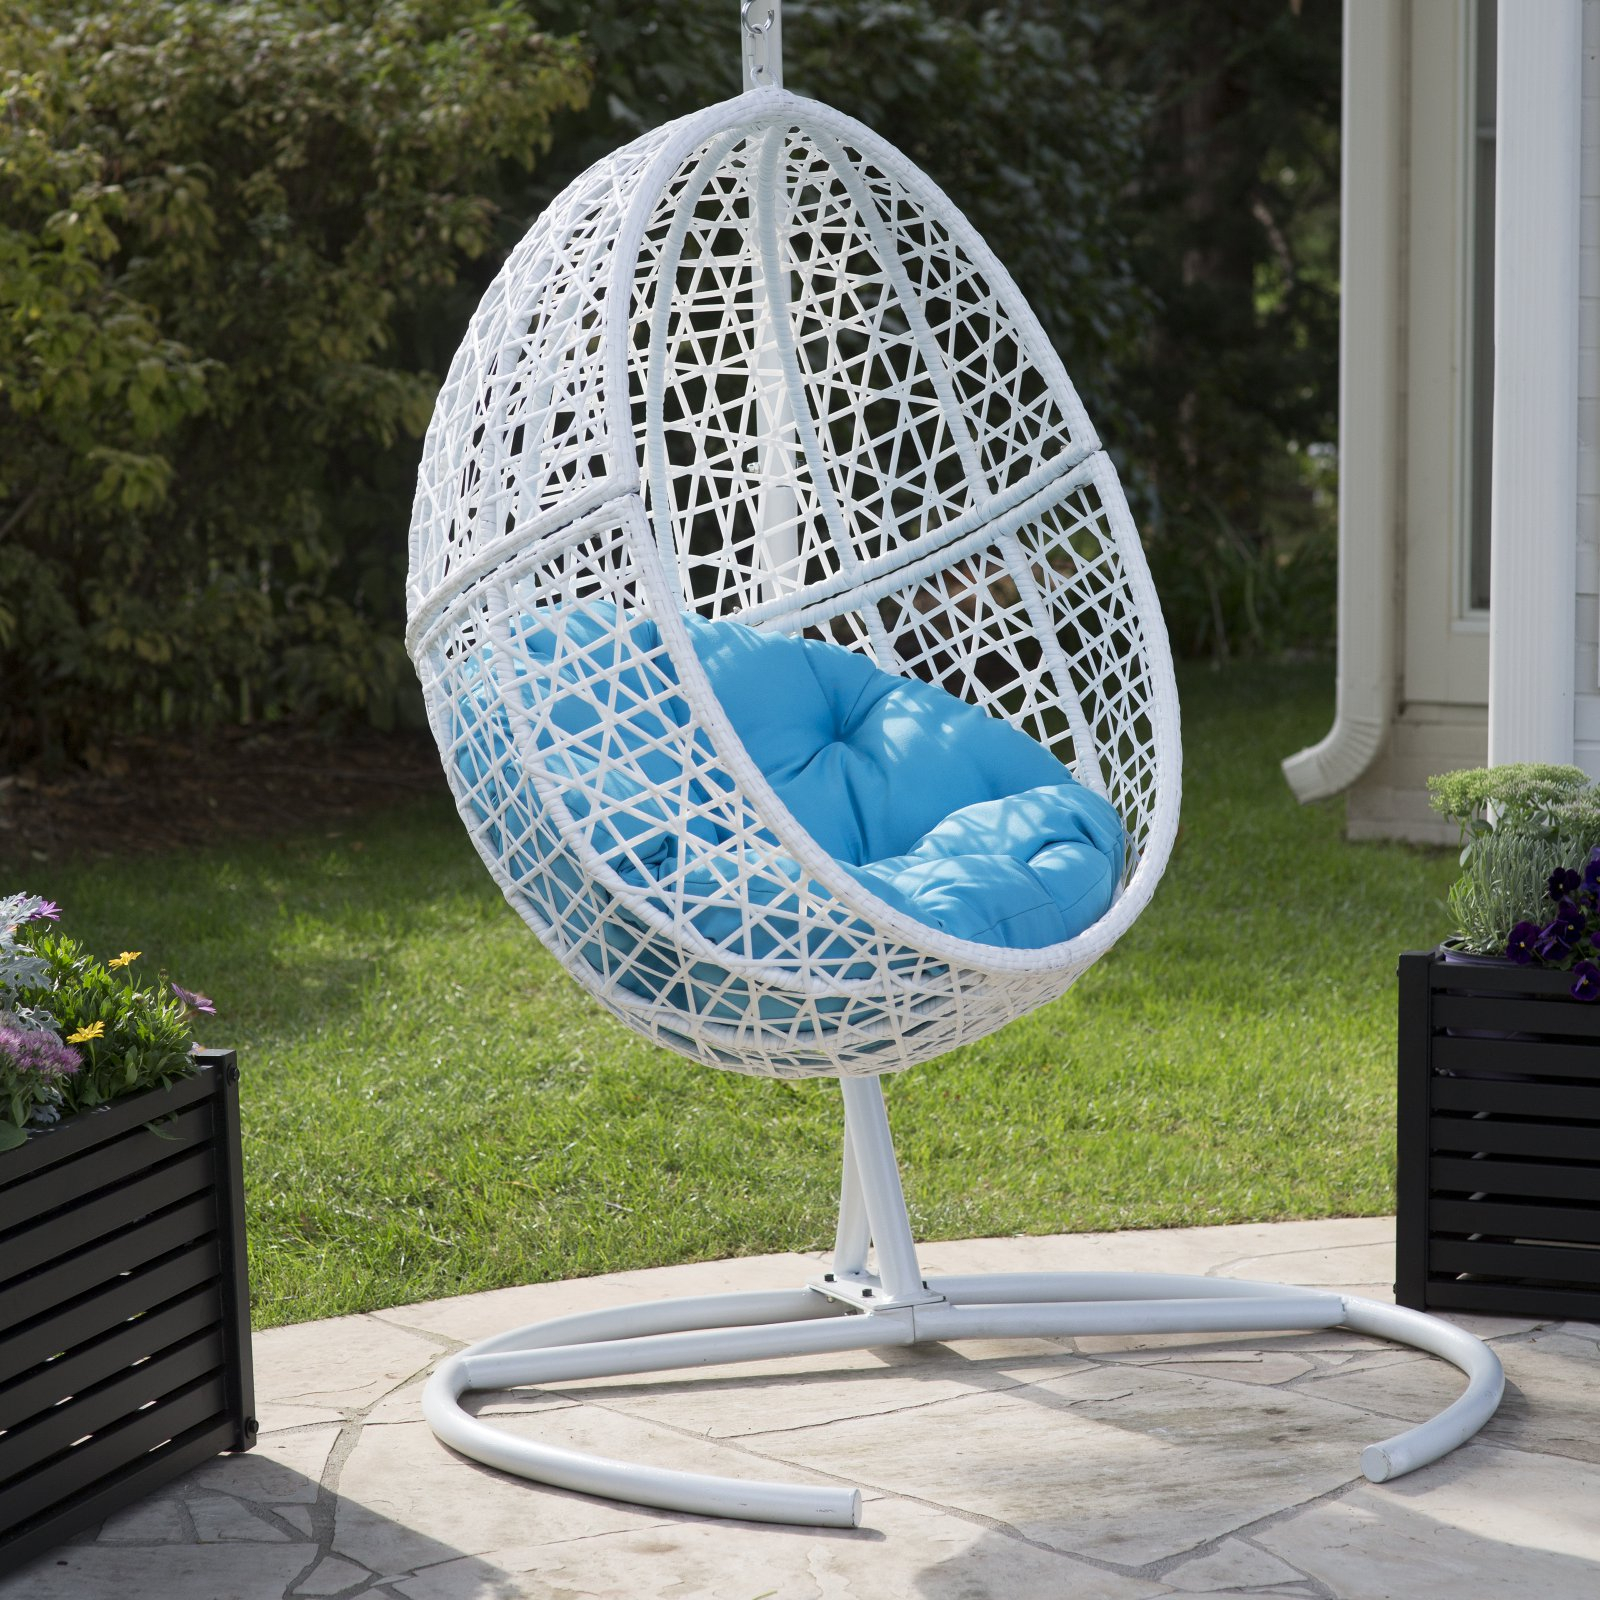 Belham Living Resin Wicker Blanca Hanging Egg Chair With For Outdoor Wicker Plastic Tear Porch Swings With Stand (View 13 of 25)